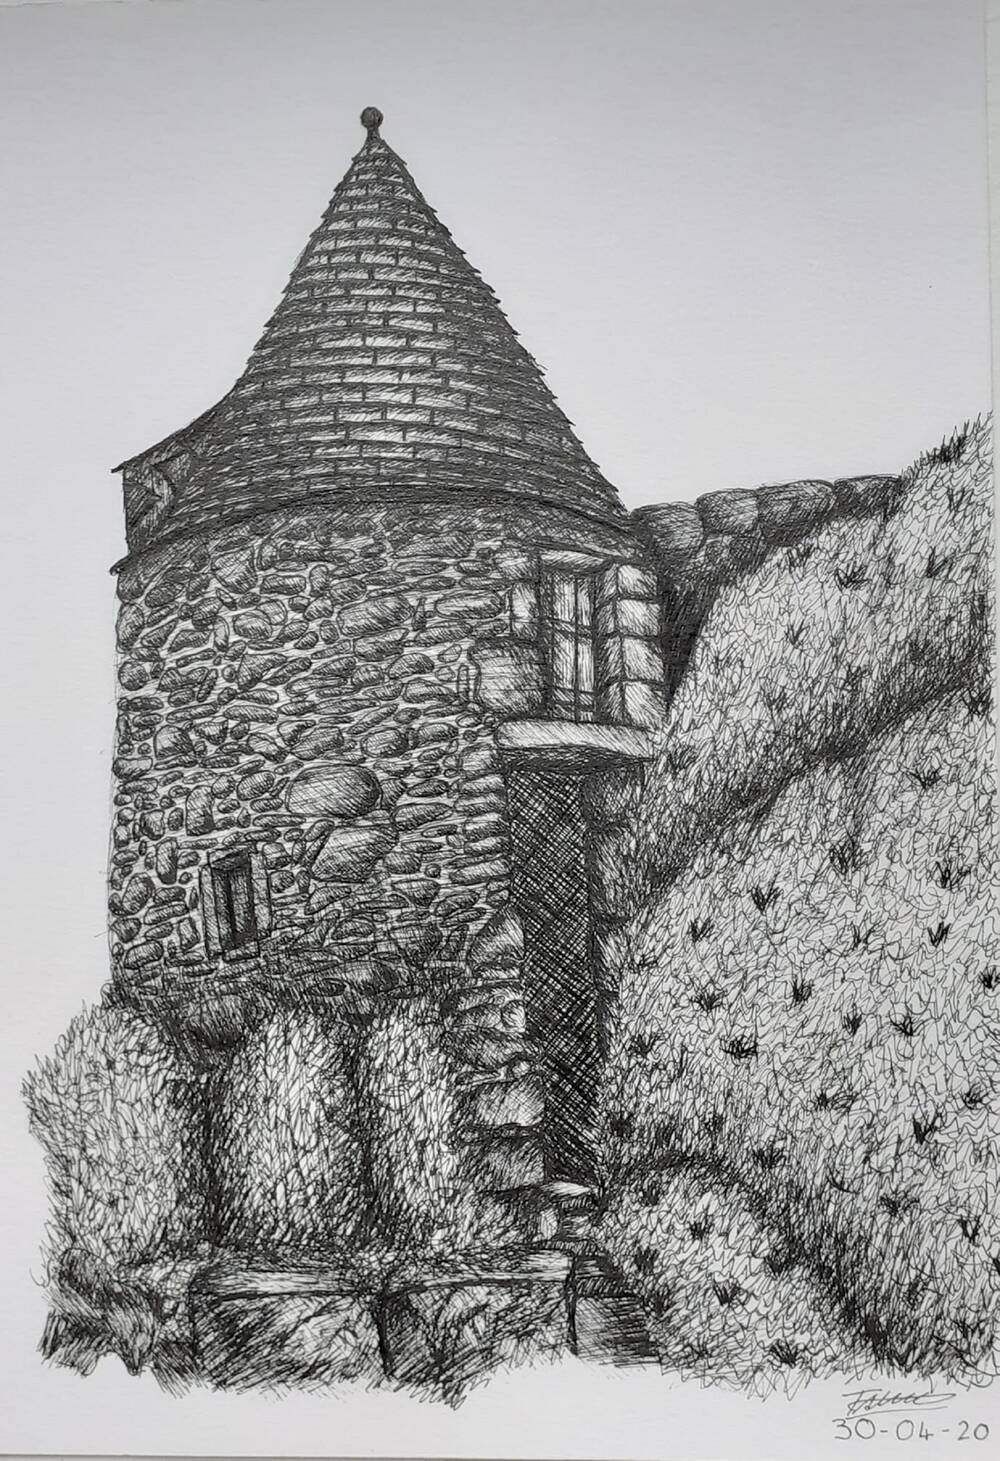 A black and white pencil line drawing of a castle turret, with shrubs in the foreground and a large hedge to the right.